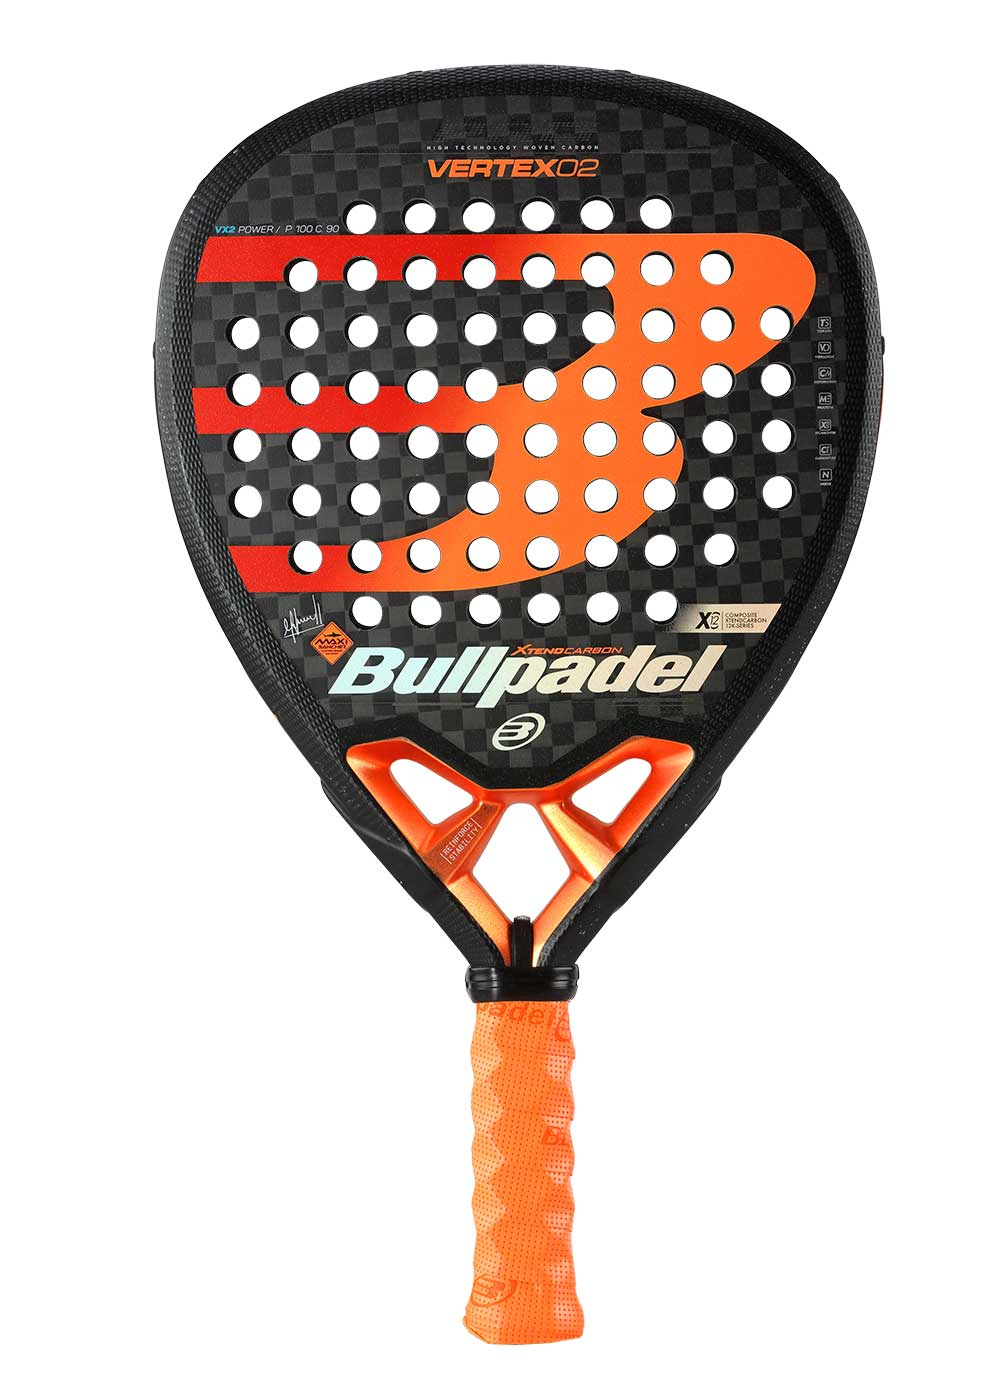 Bullpadel Vertex 02 2020